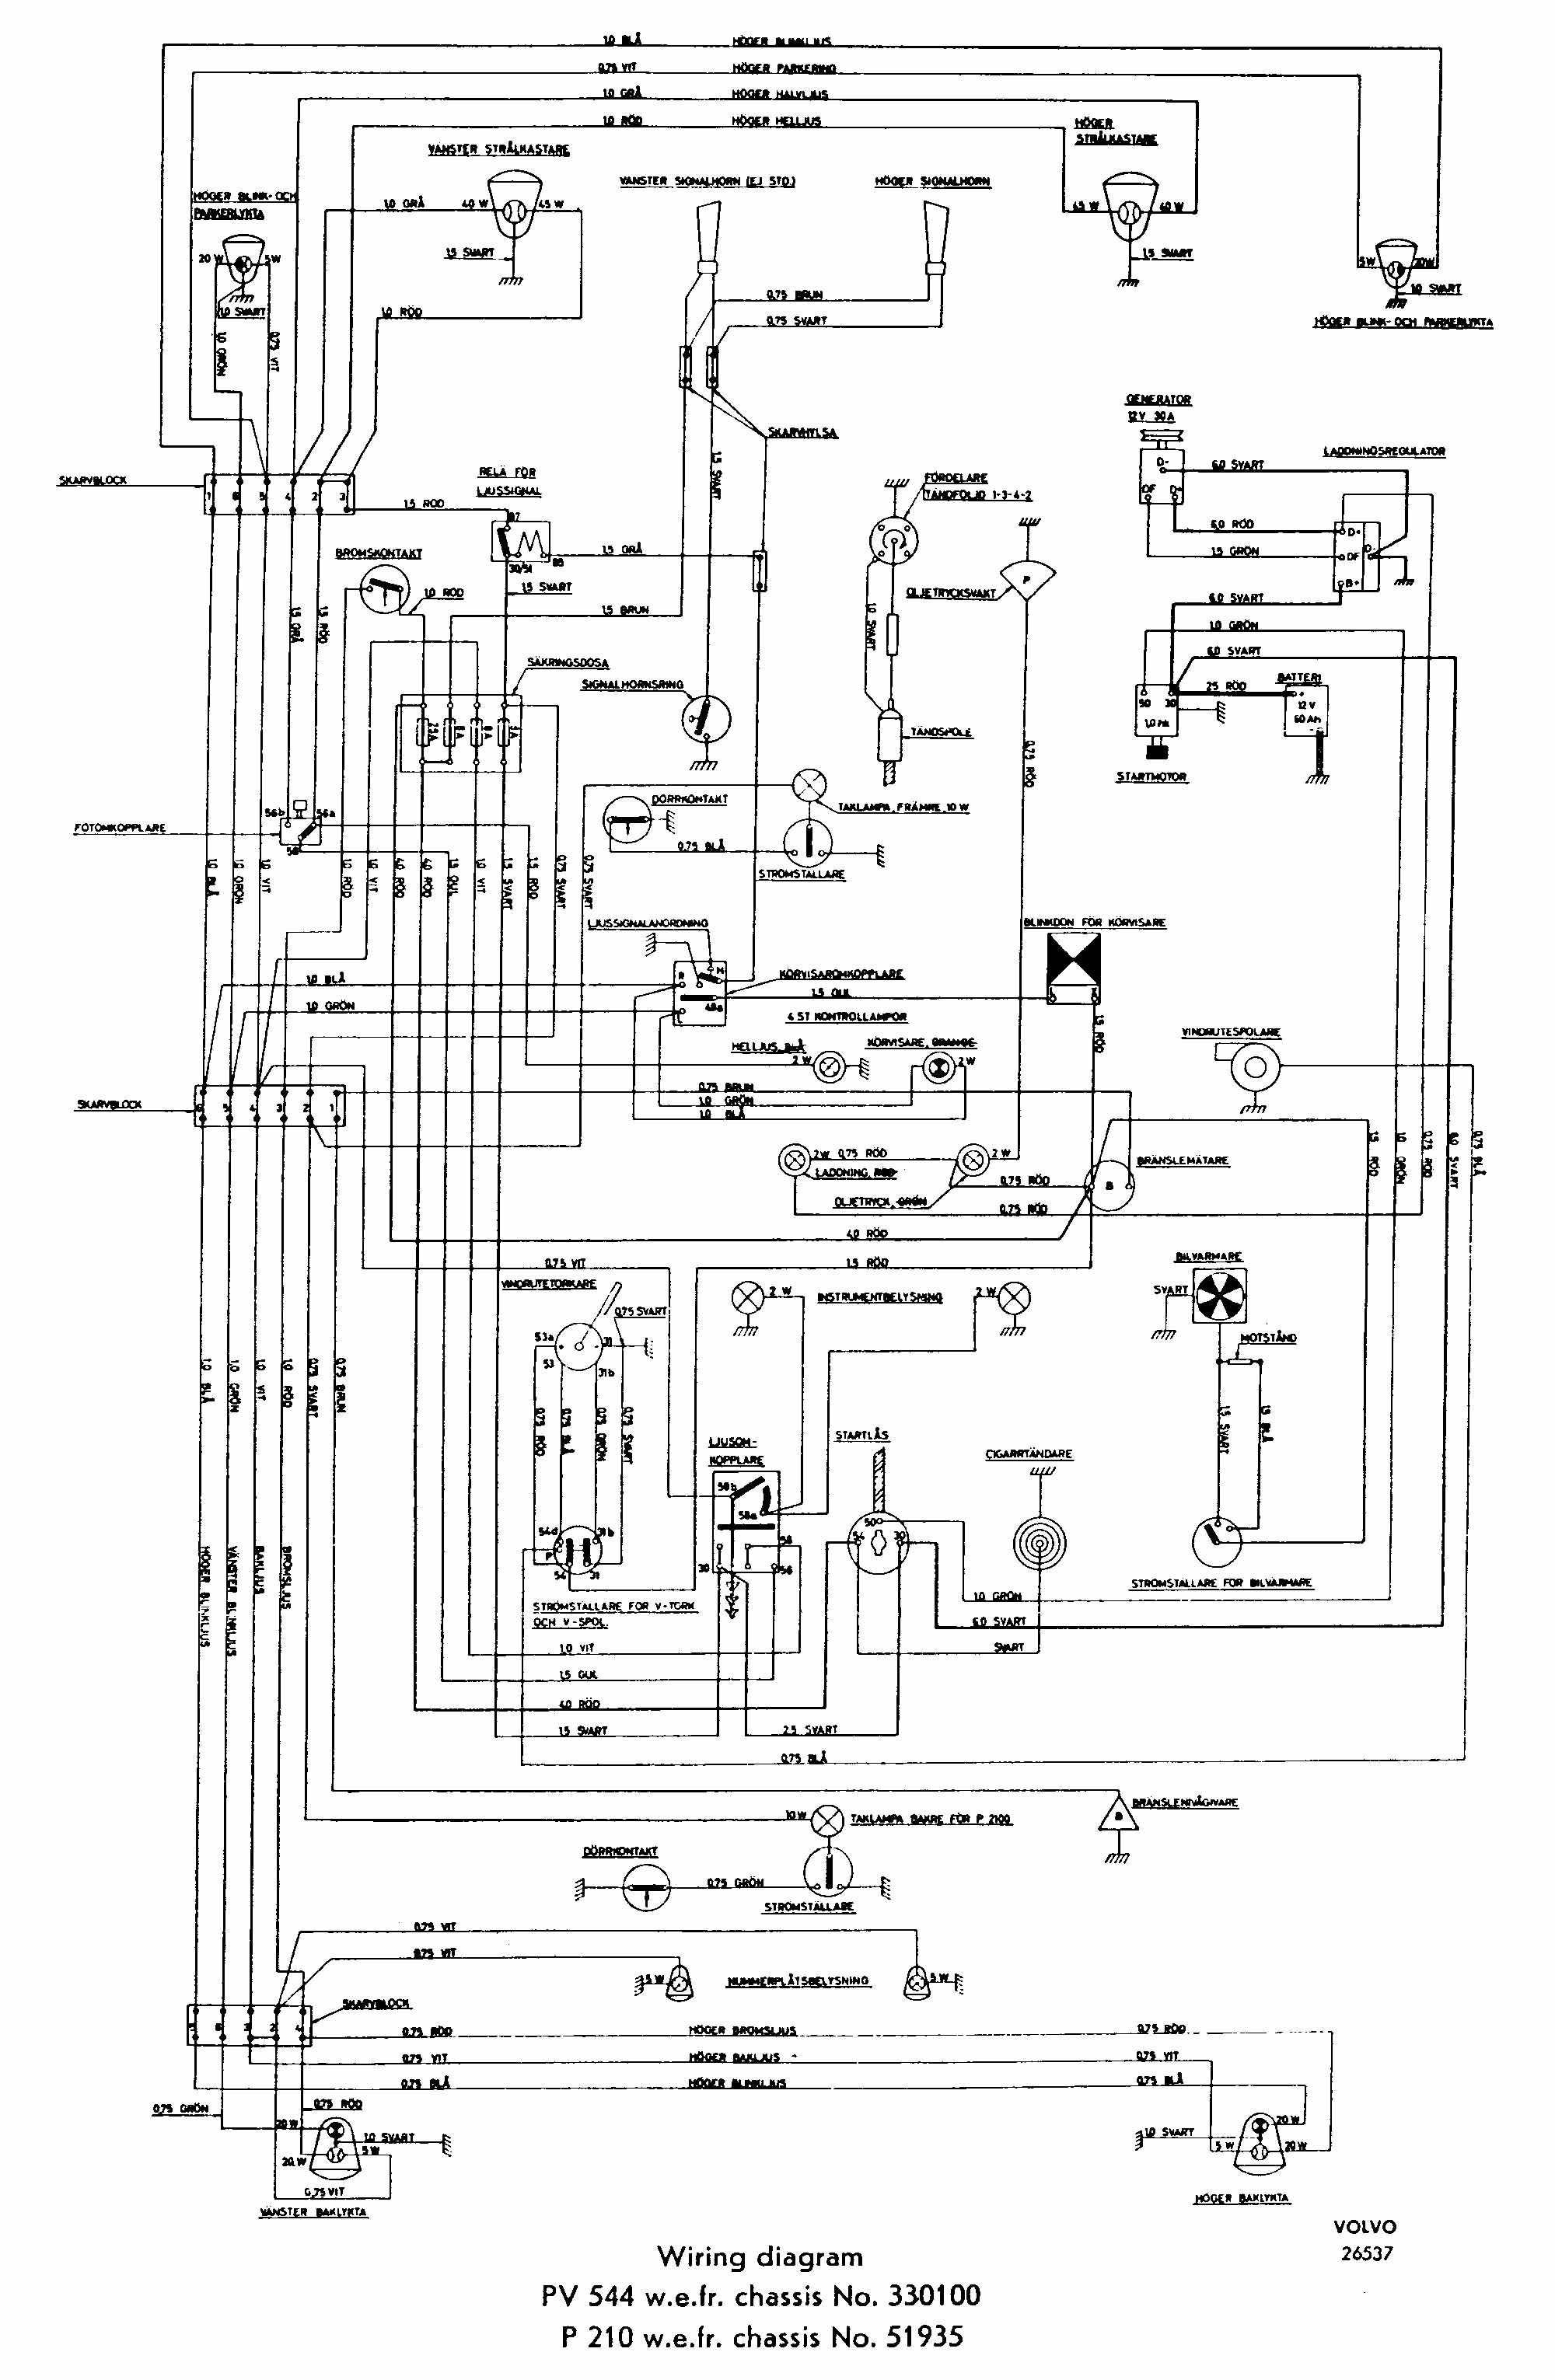 12v schematic wiring diagram